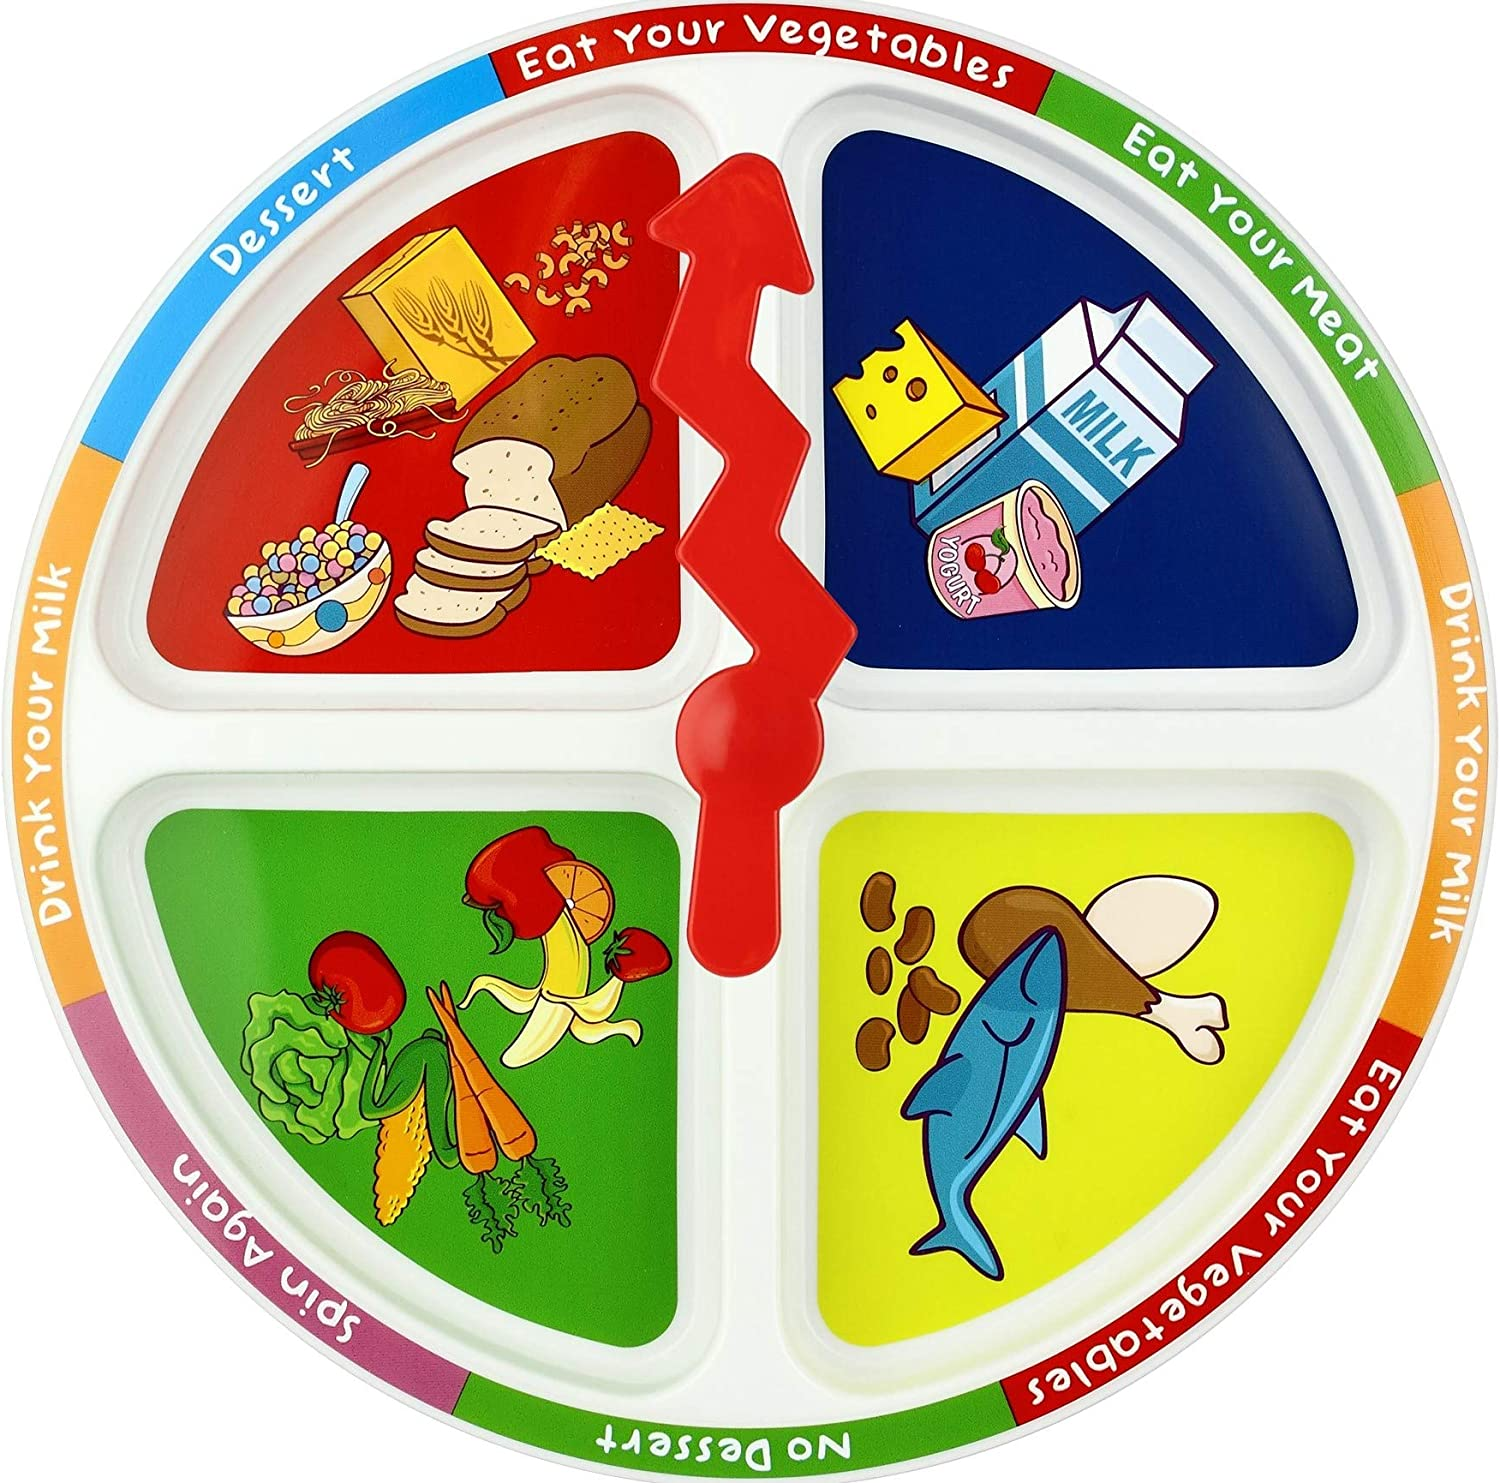 KidsFunwares 4-Square Meal Plate - Promotes Healthy Eating Habits - Teaches Portion Control - Encourages Creativity and Imagination at the Dinner Table - Great Gift for Kids - Dishwasher Safe